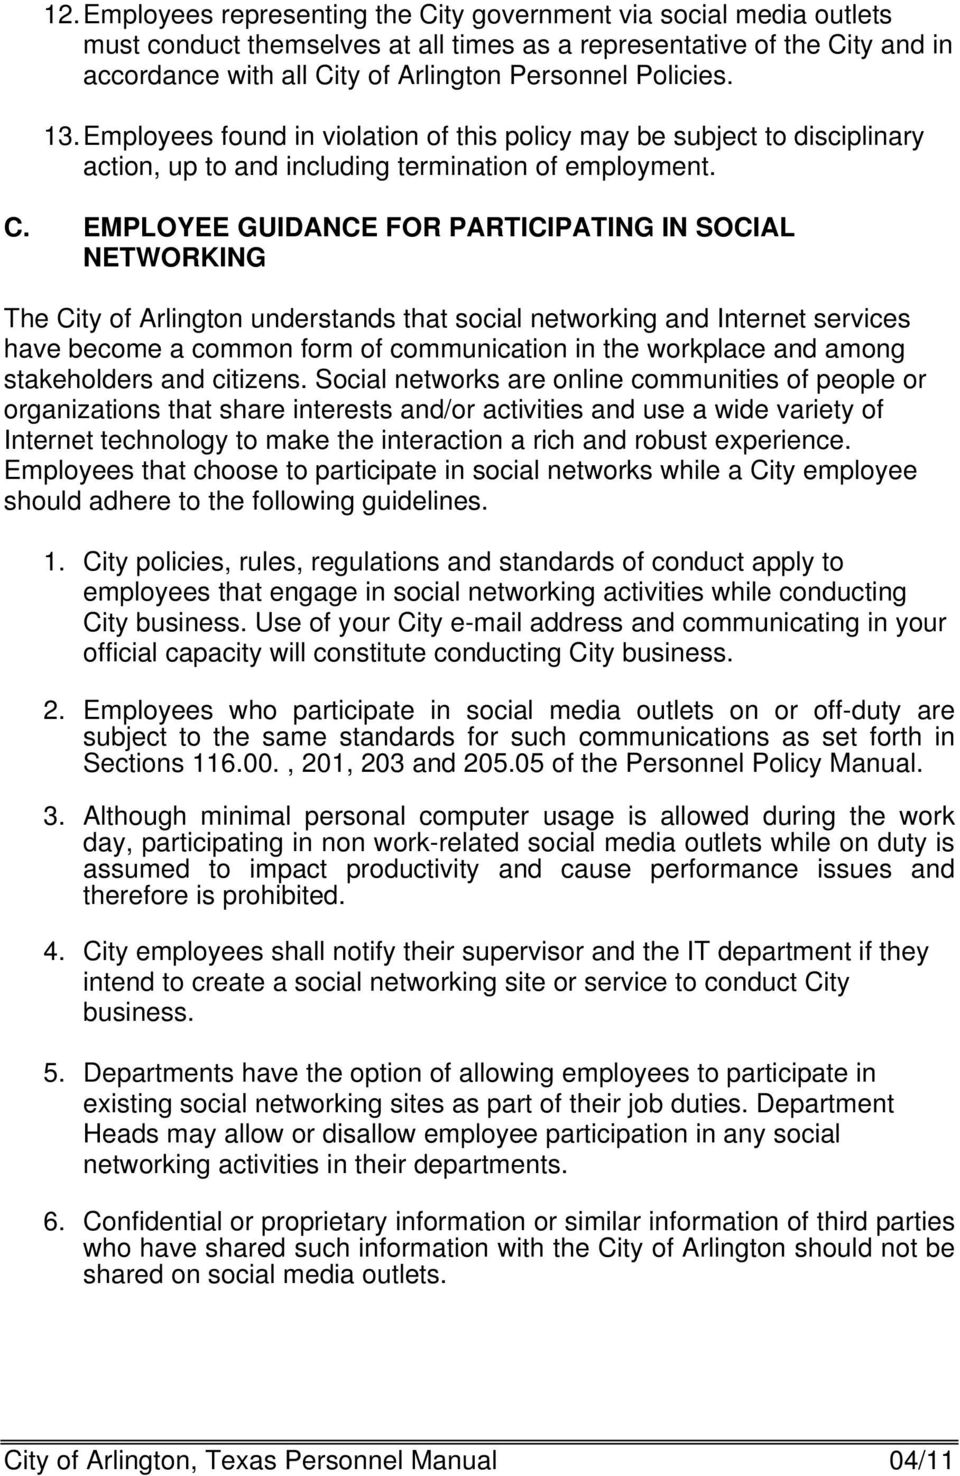 EMPLOYEE GUIDANCE FOR PARTICIPATING IN SOCIAL NETWORKING The City of Arlington understands that social networking and Internet services have become a common form of communication in the workplace and